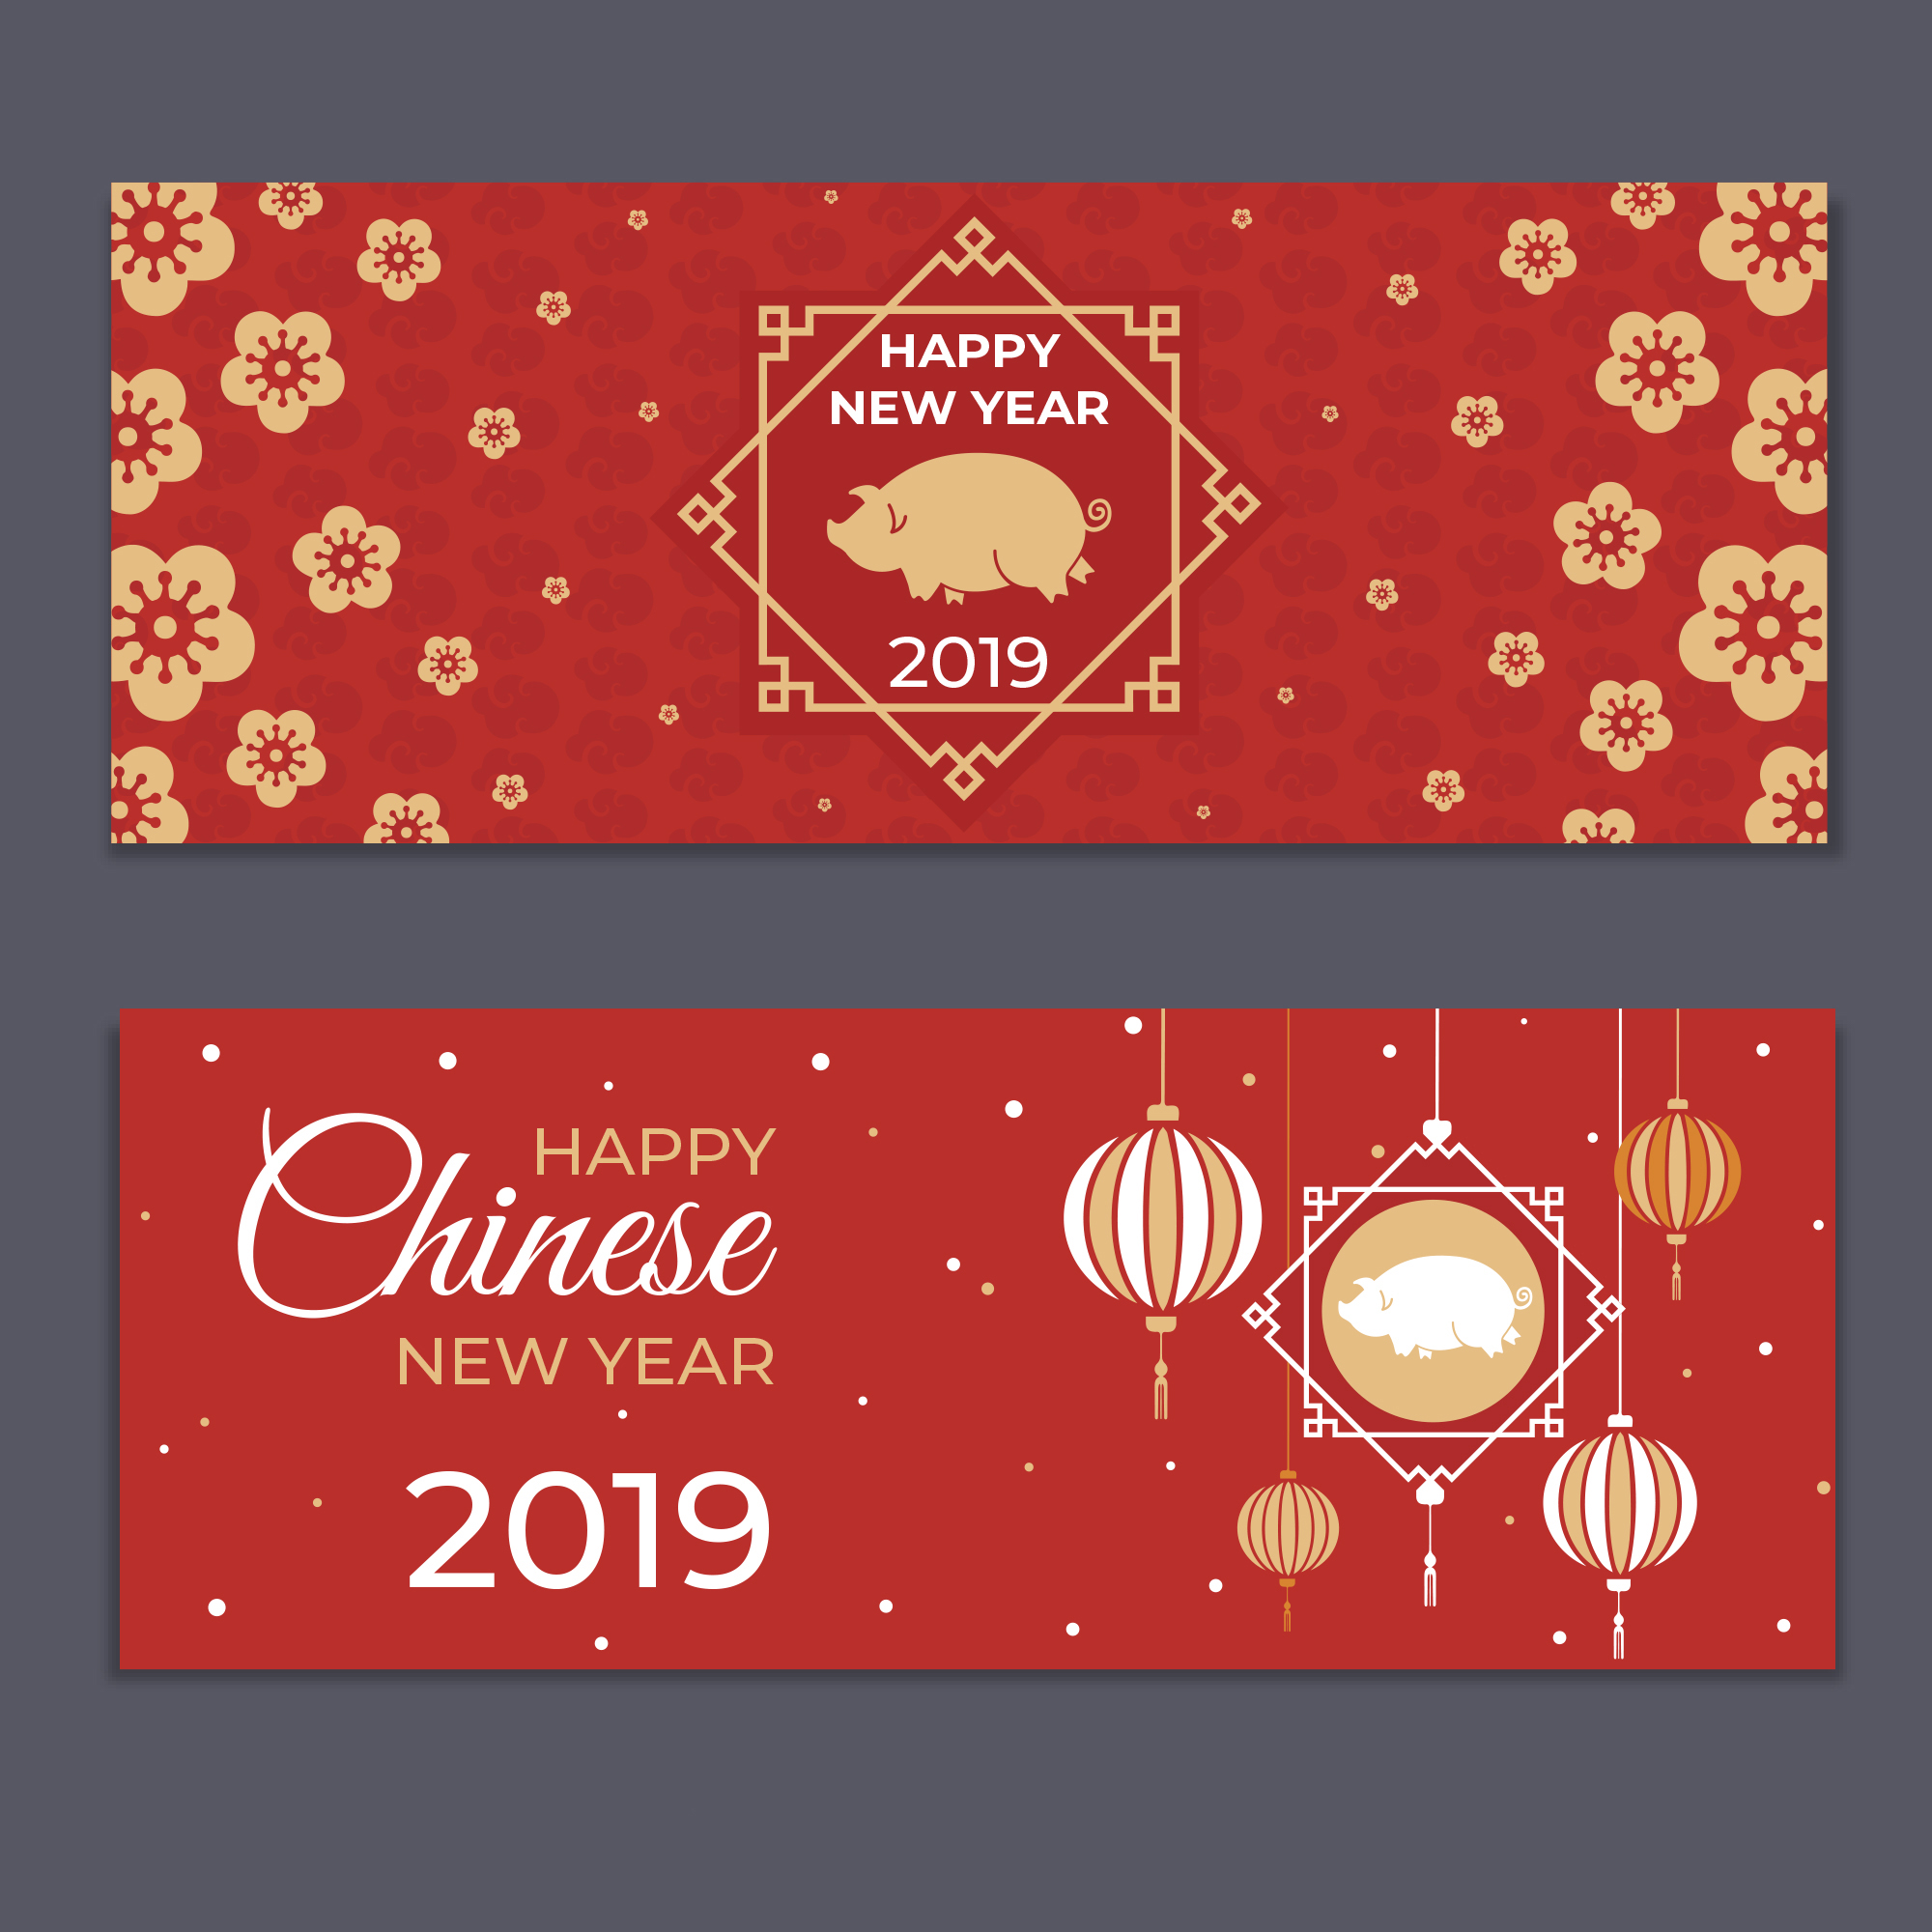 2019新年农历猪年贺卡矢量素材模板 2019 New Year Lunar Year Of The Pig Greeting Card Vector Material Template插图(5)